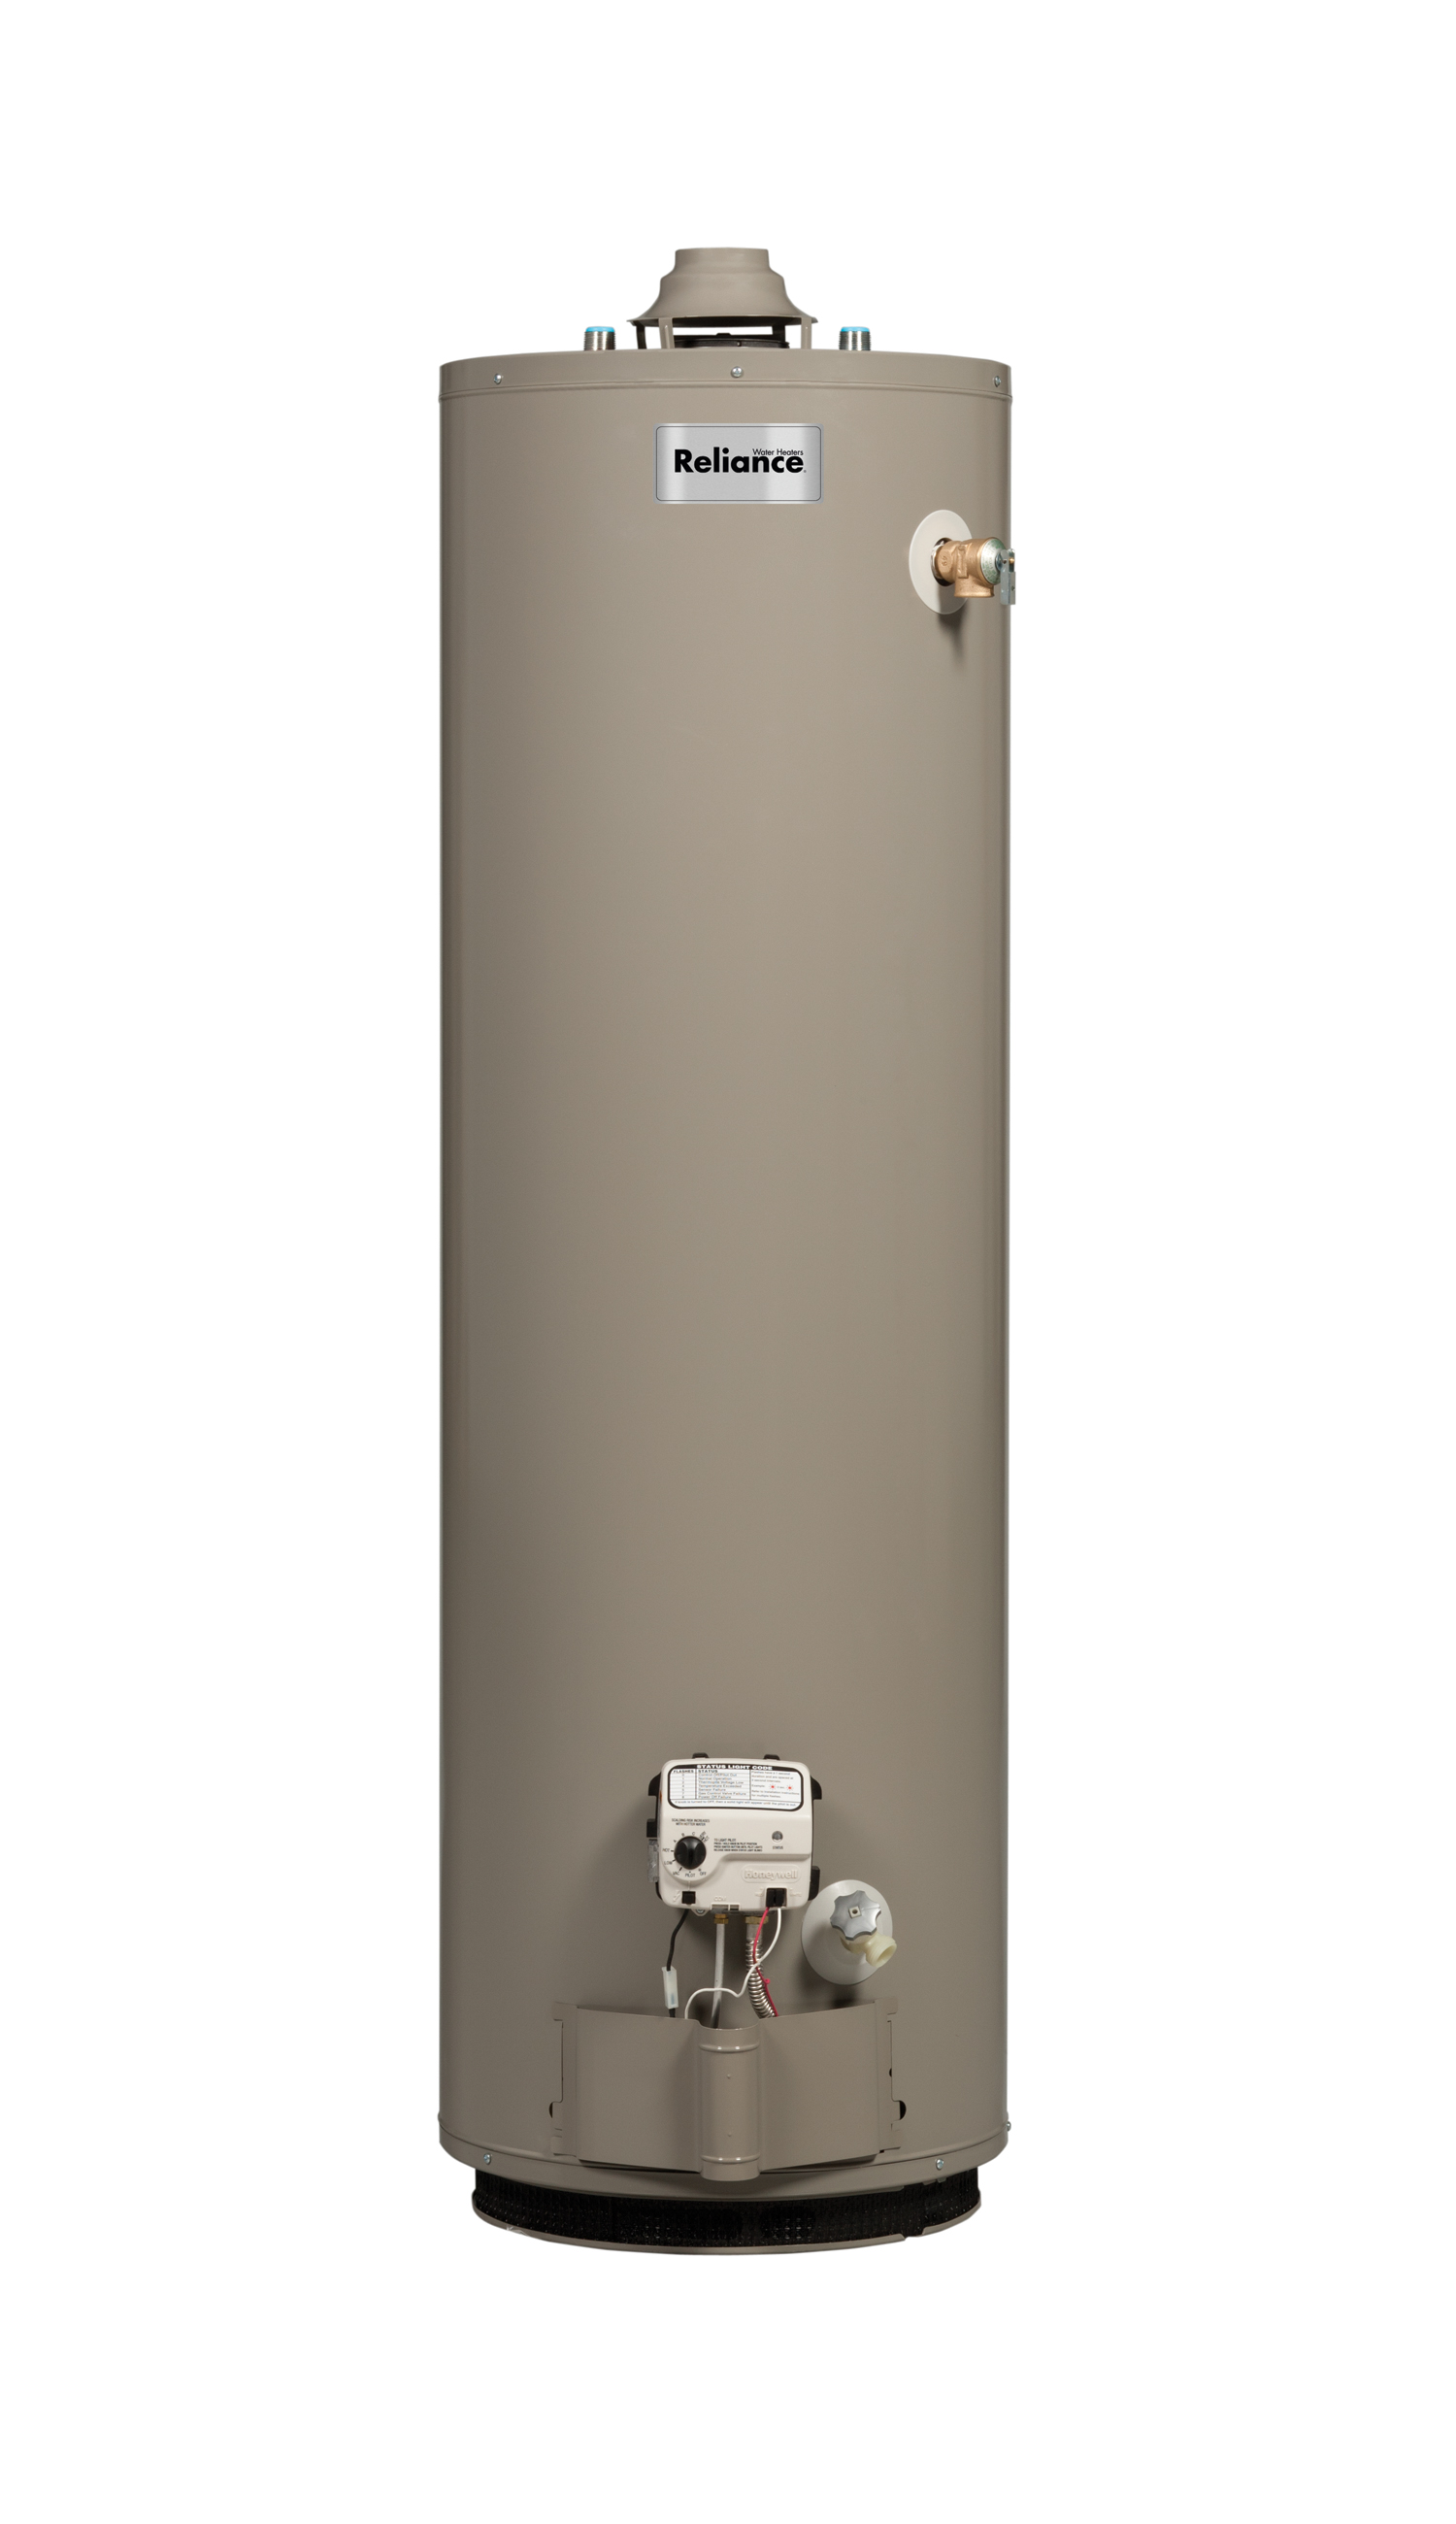 Image Result For Reliance Water Heaters